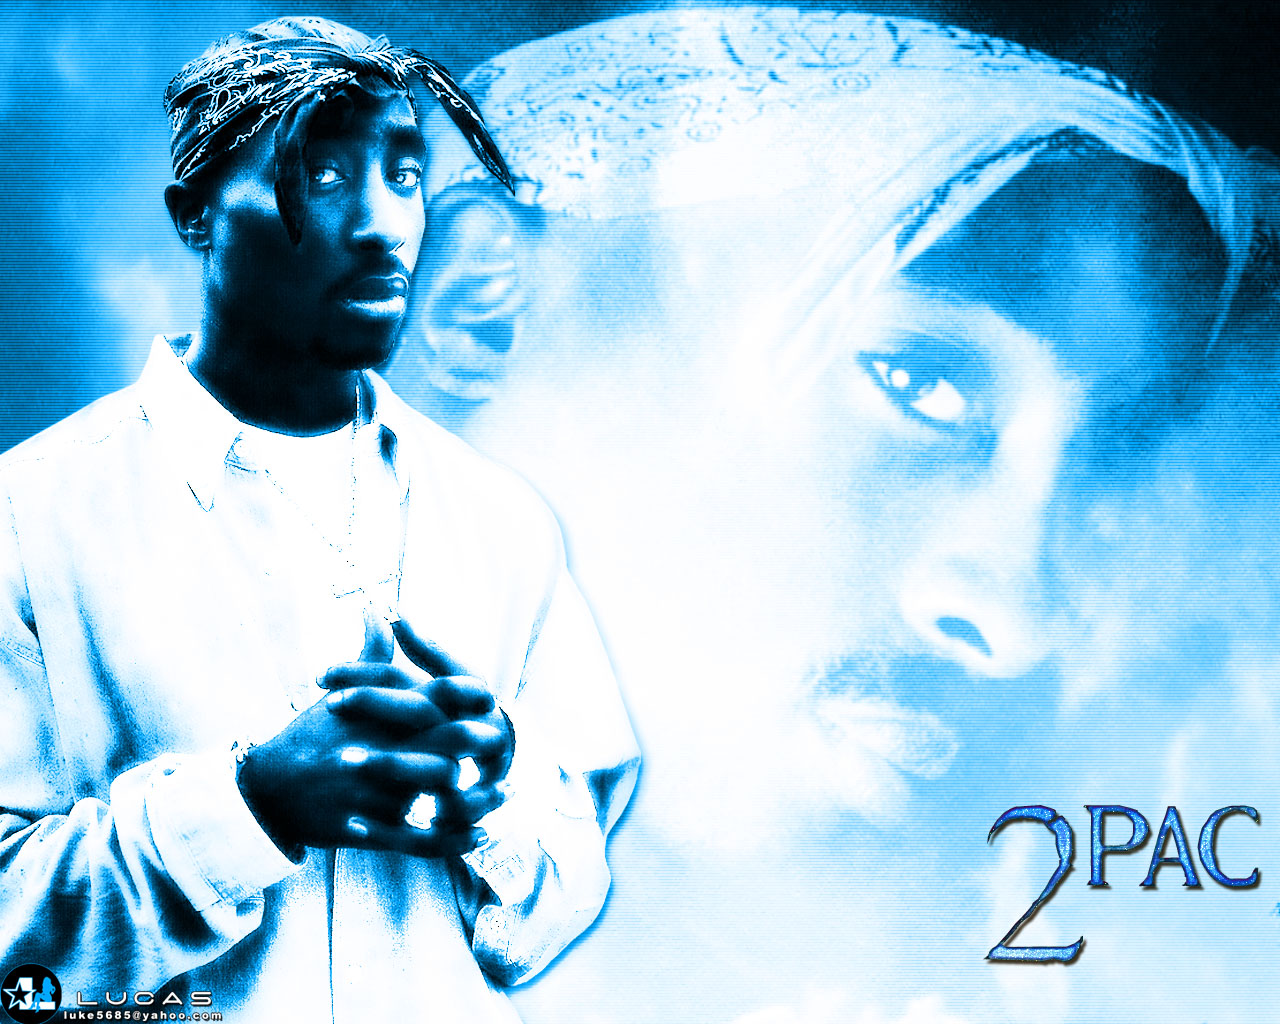 2pac wallpaper named